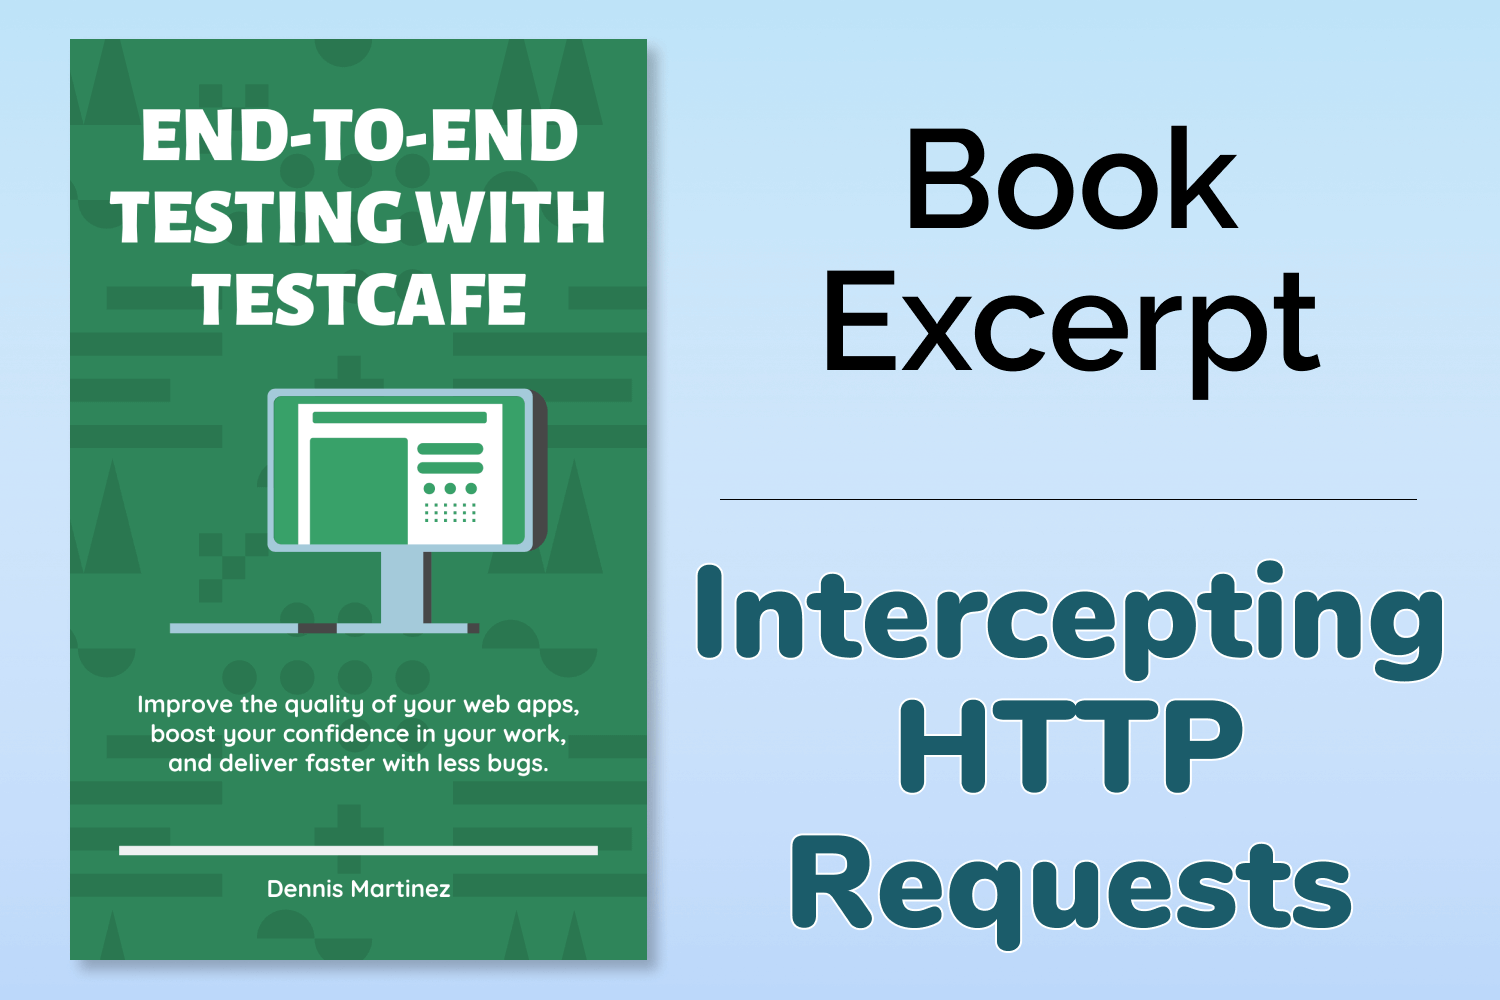 End-to-End Testing with TestCafe Book Excerpt: Intercepting HTTP Requests